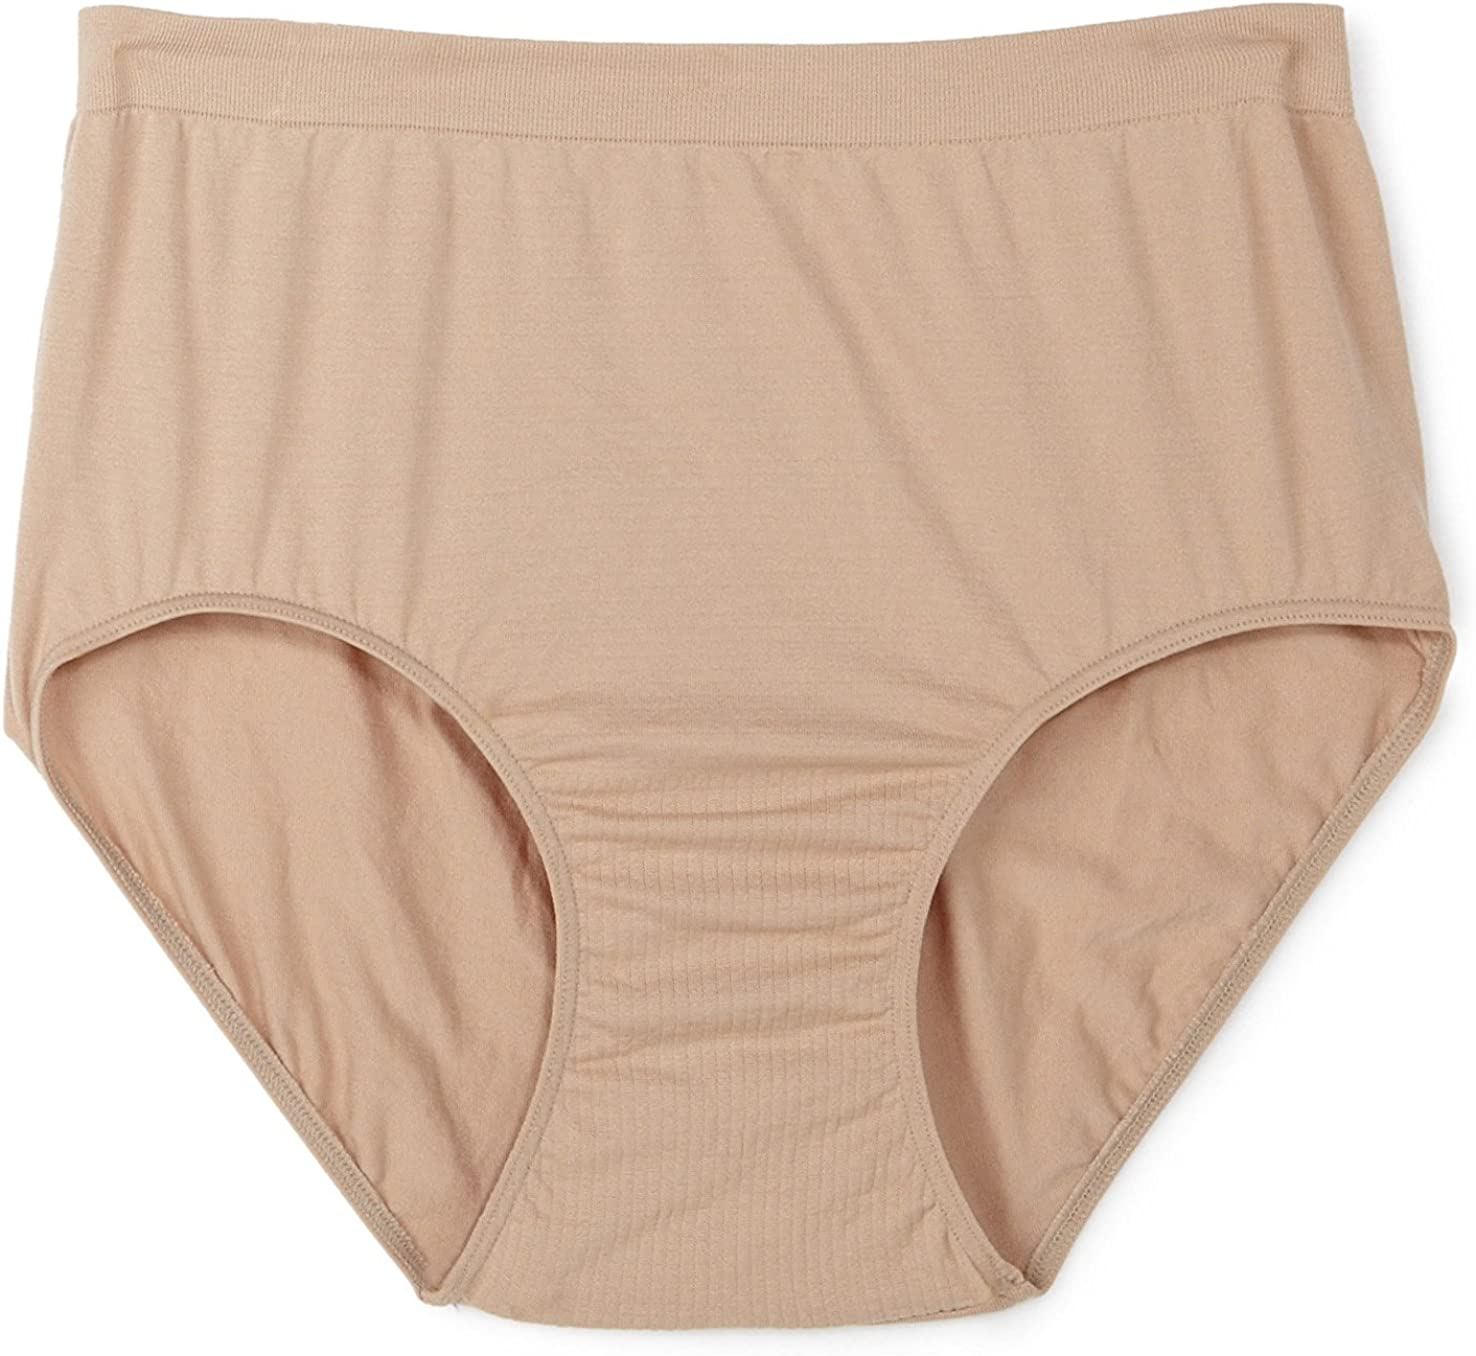 Bali Barely There by Comfort Revolution Brief_Nude_6-7